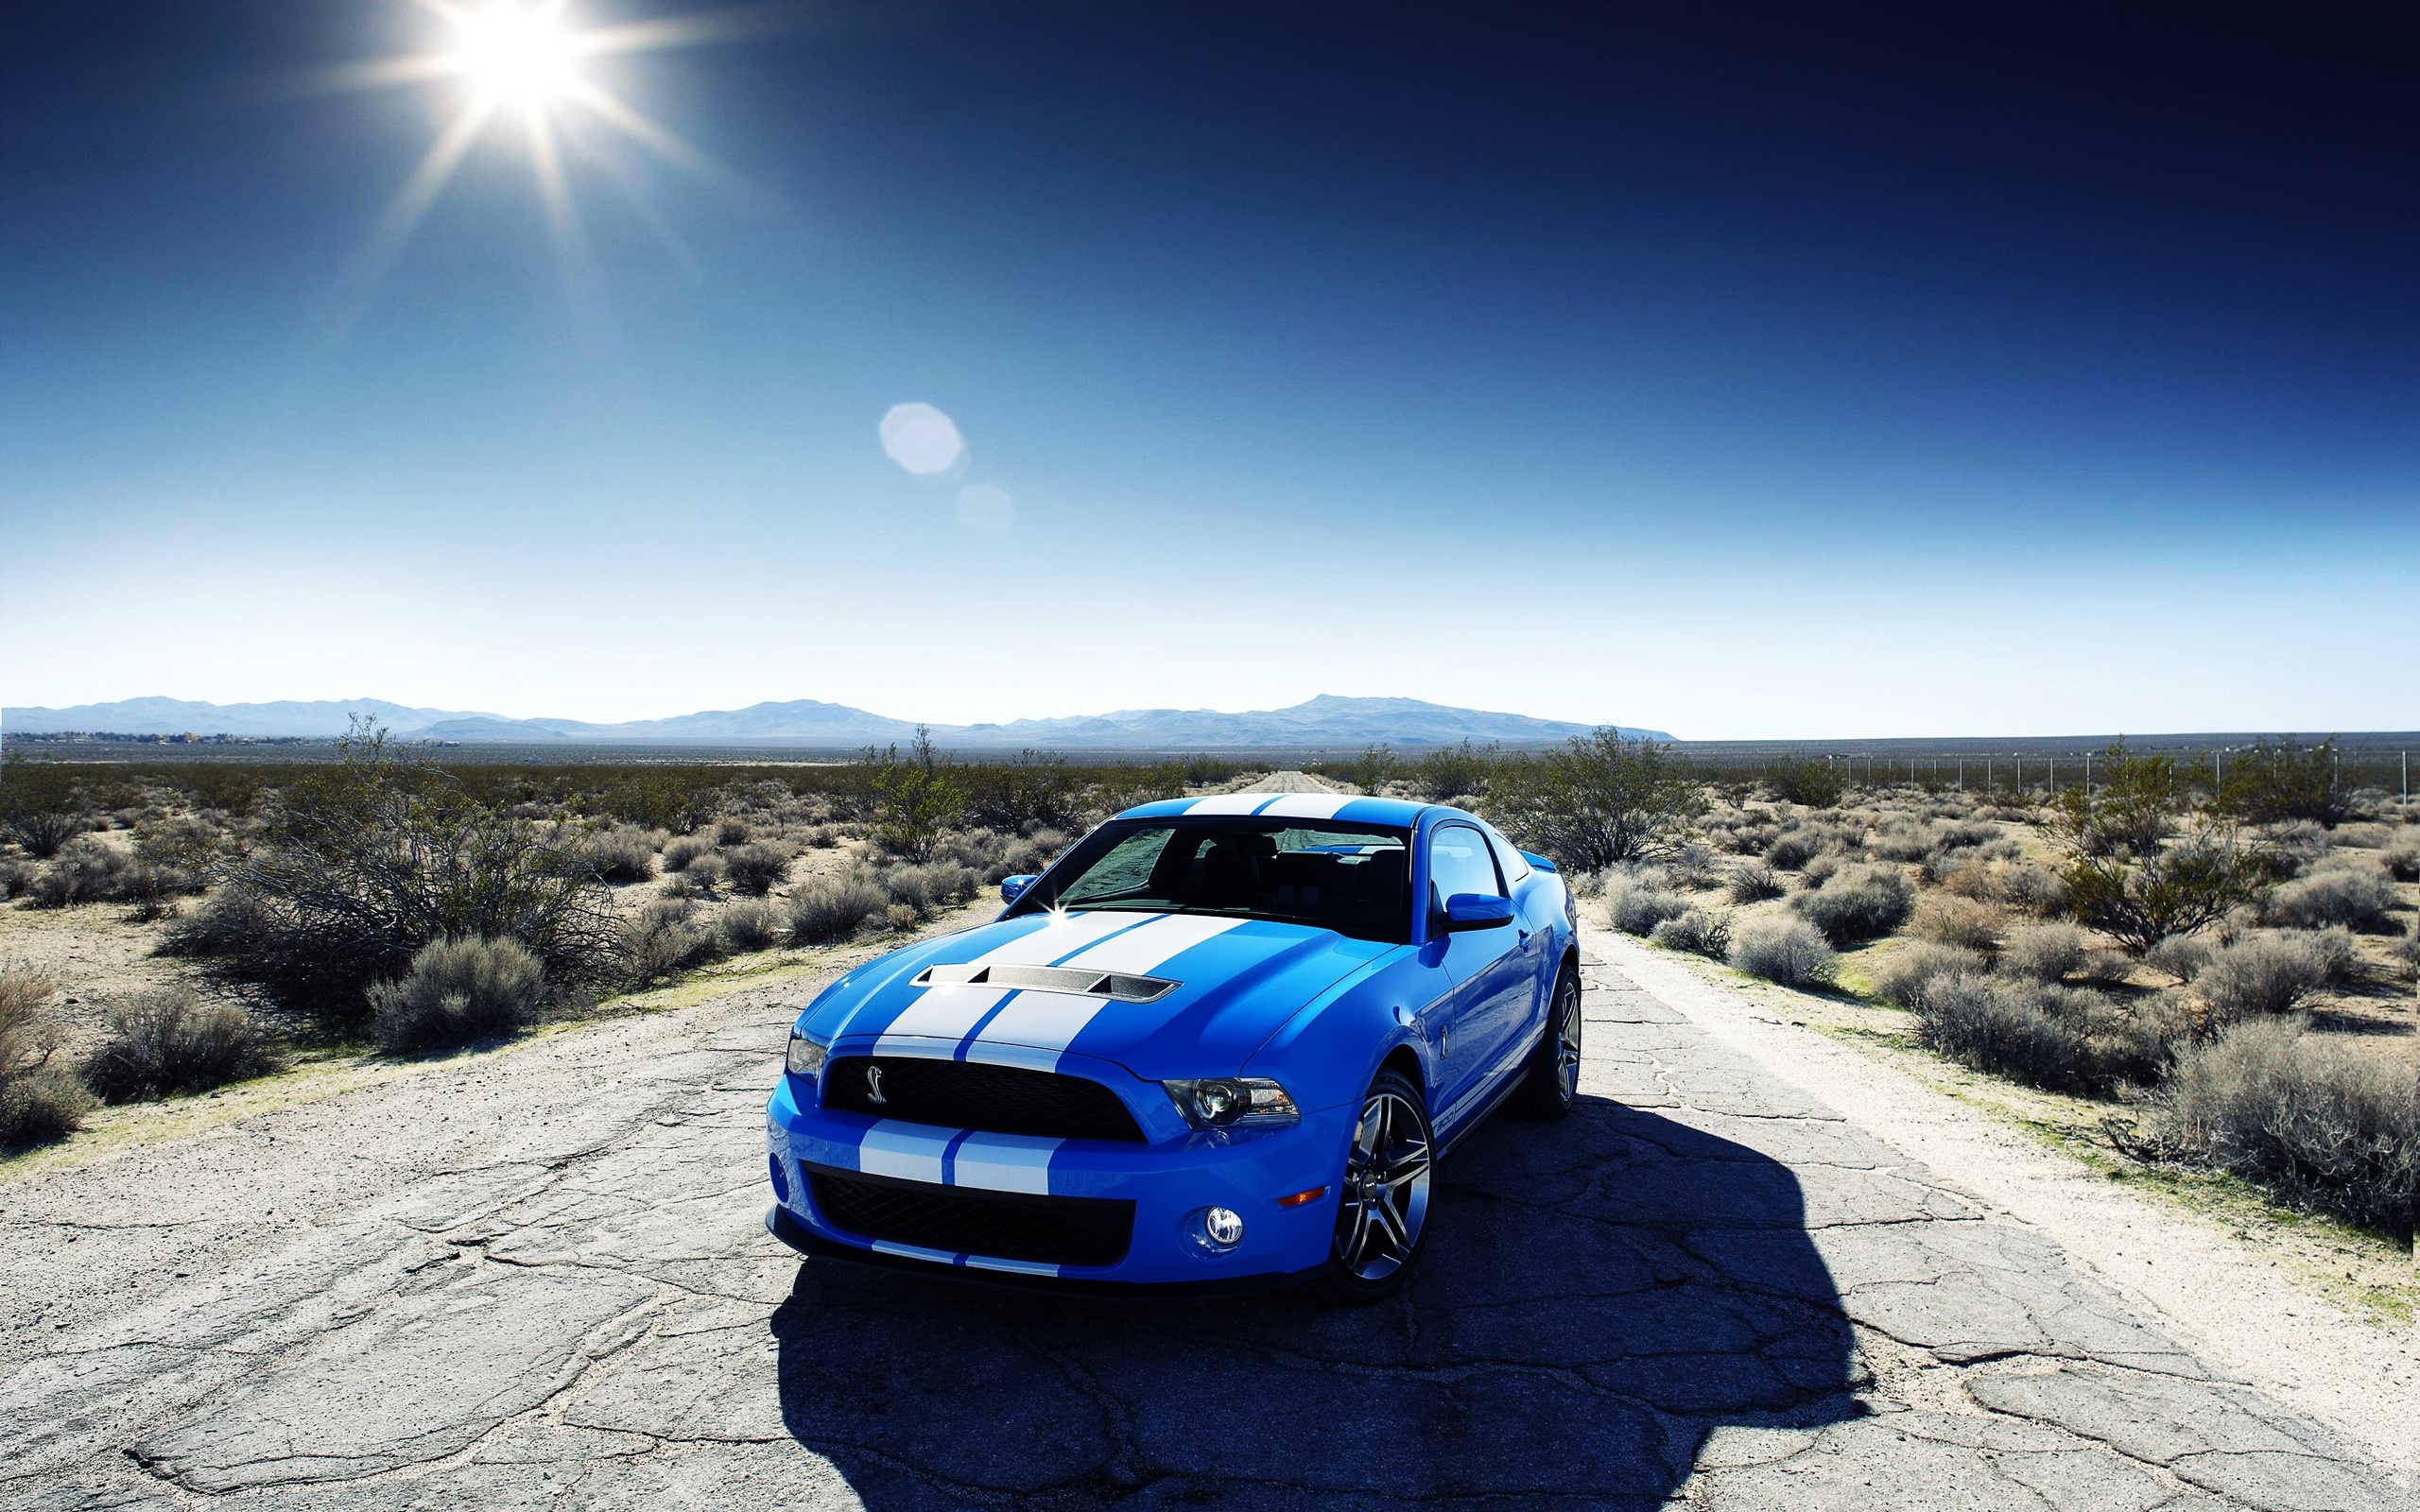 Ford Shelby Gt500 Car Wallpapers In Jpg Format For Free Download